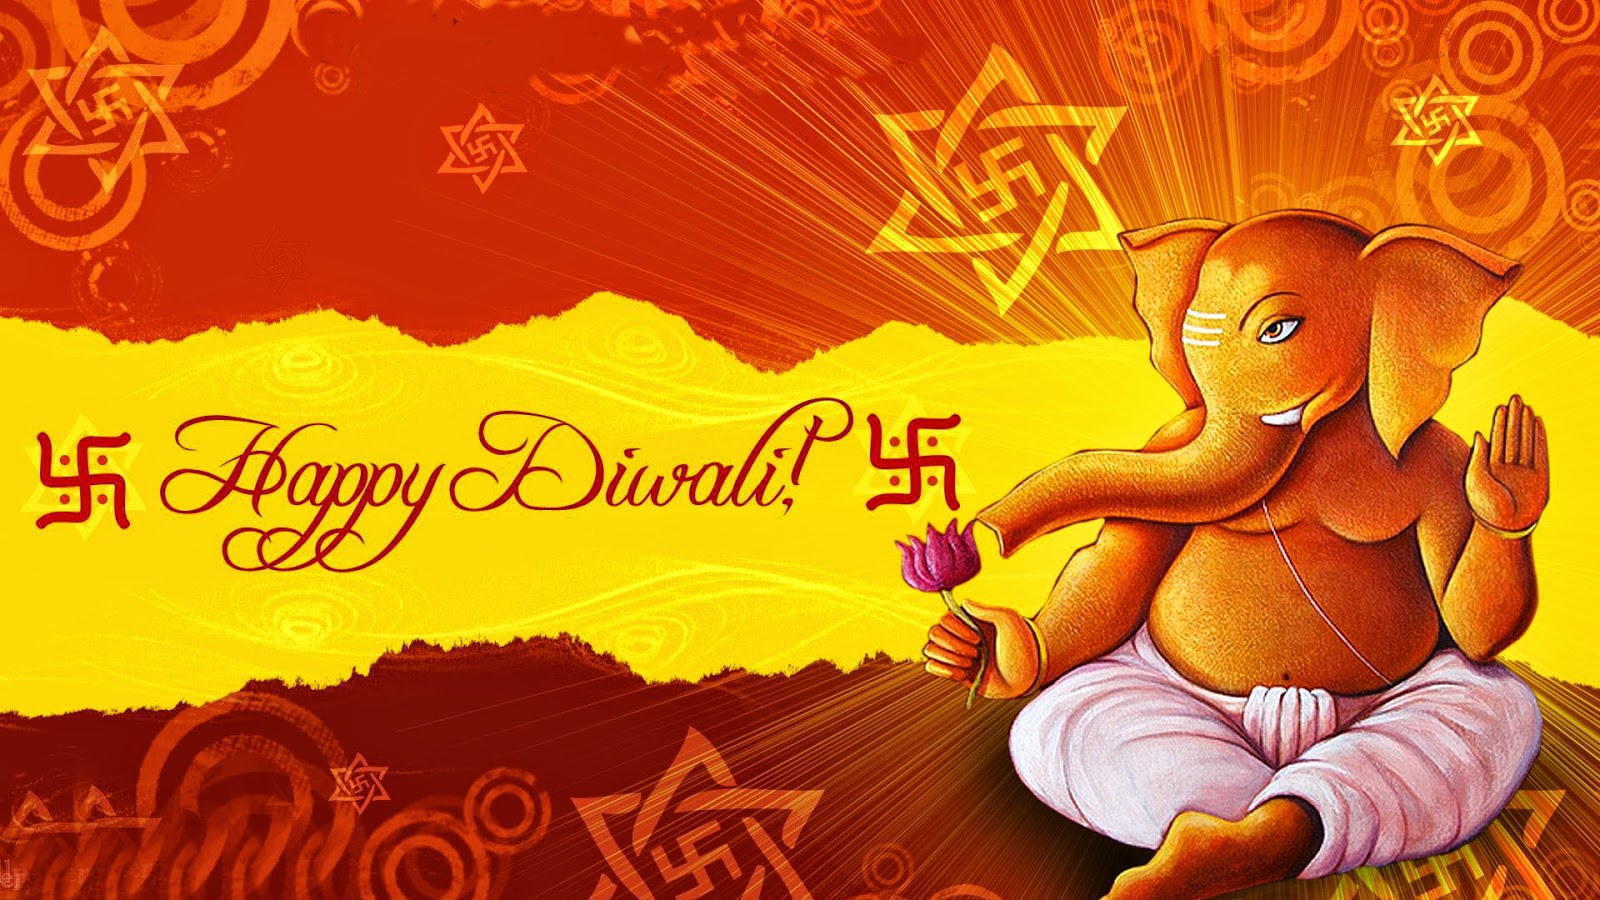 Happy Diwali And New Year Wallpapers: Happy Diwali 2014 Greeting And Wishes HD Wallpapers Free